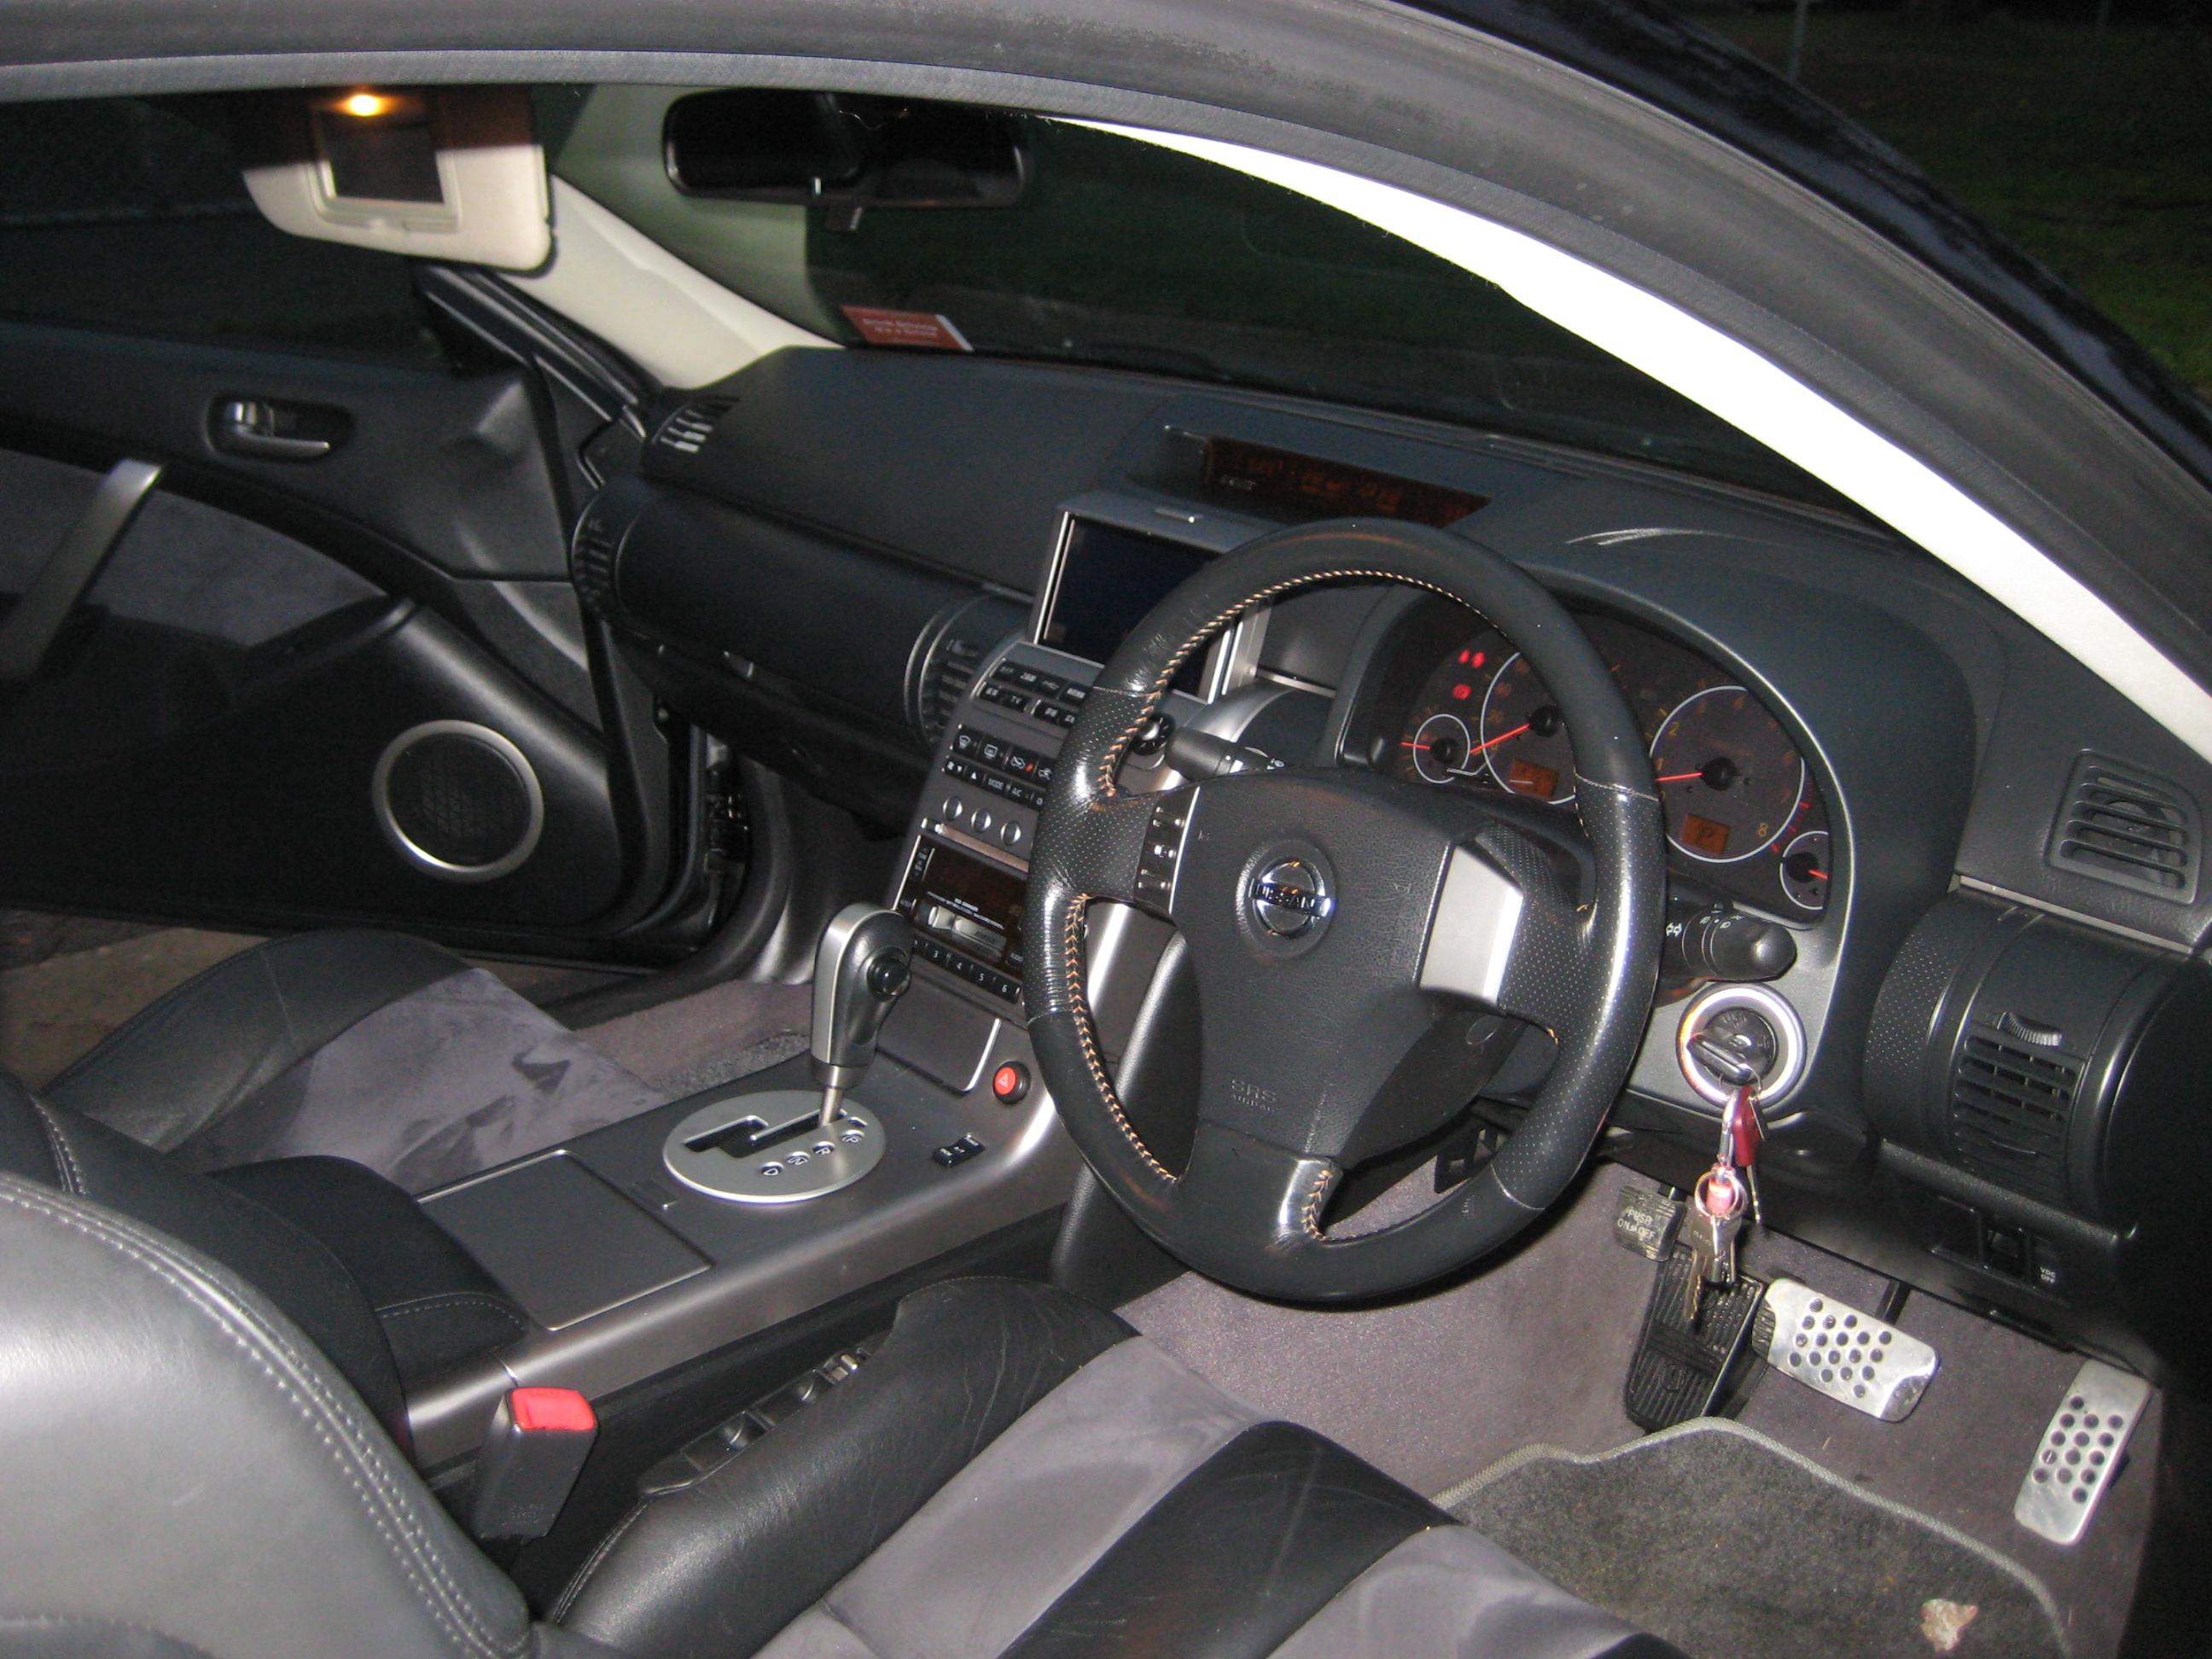 V35 Dash and inside